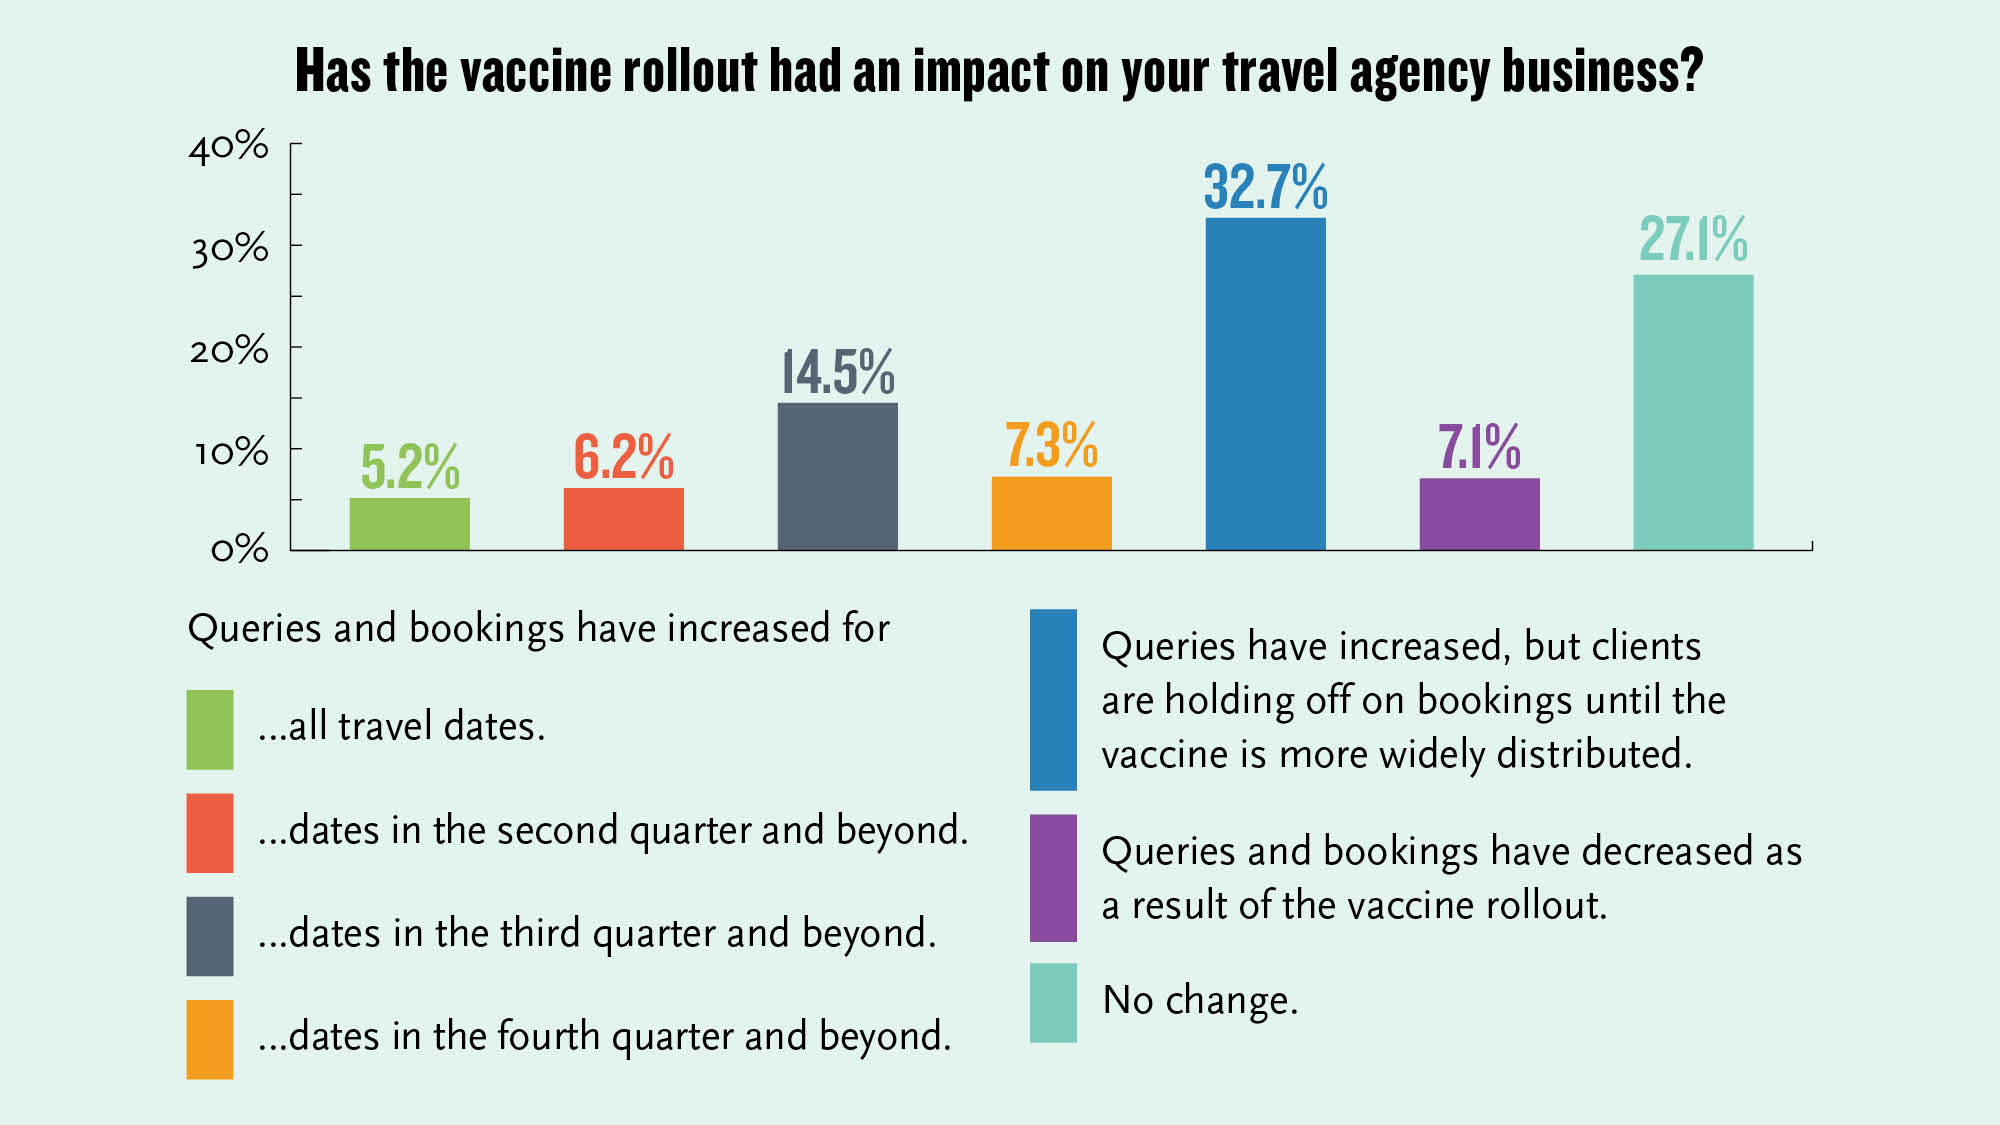 The vaccine rollout has had a positive impact on bookings and queries.